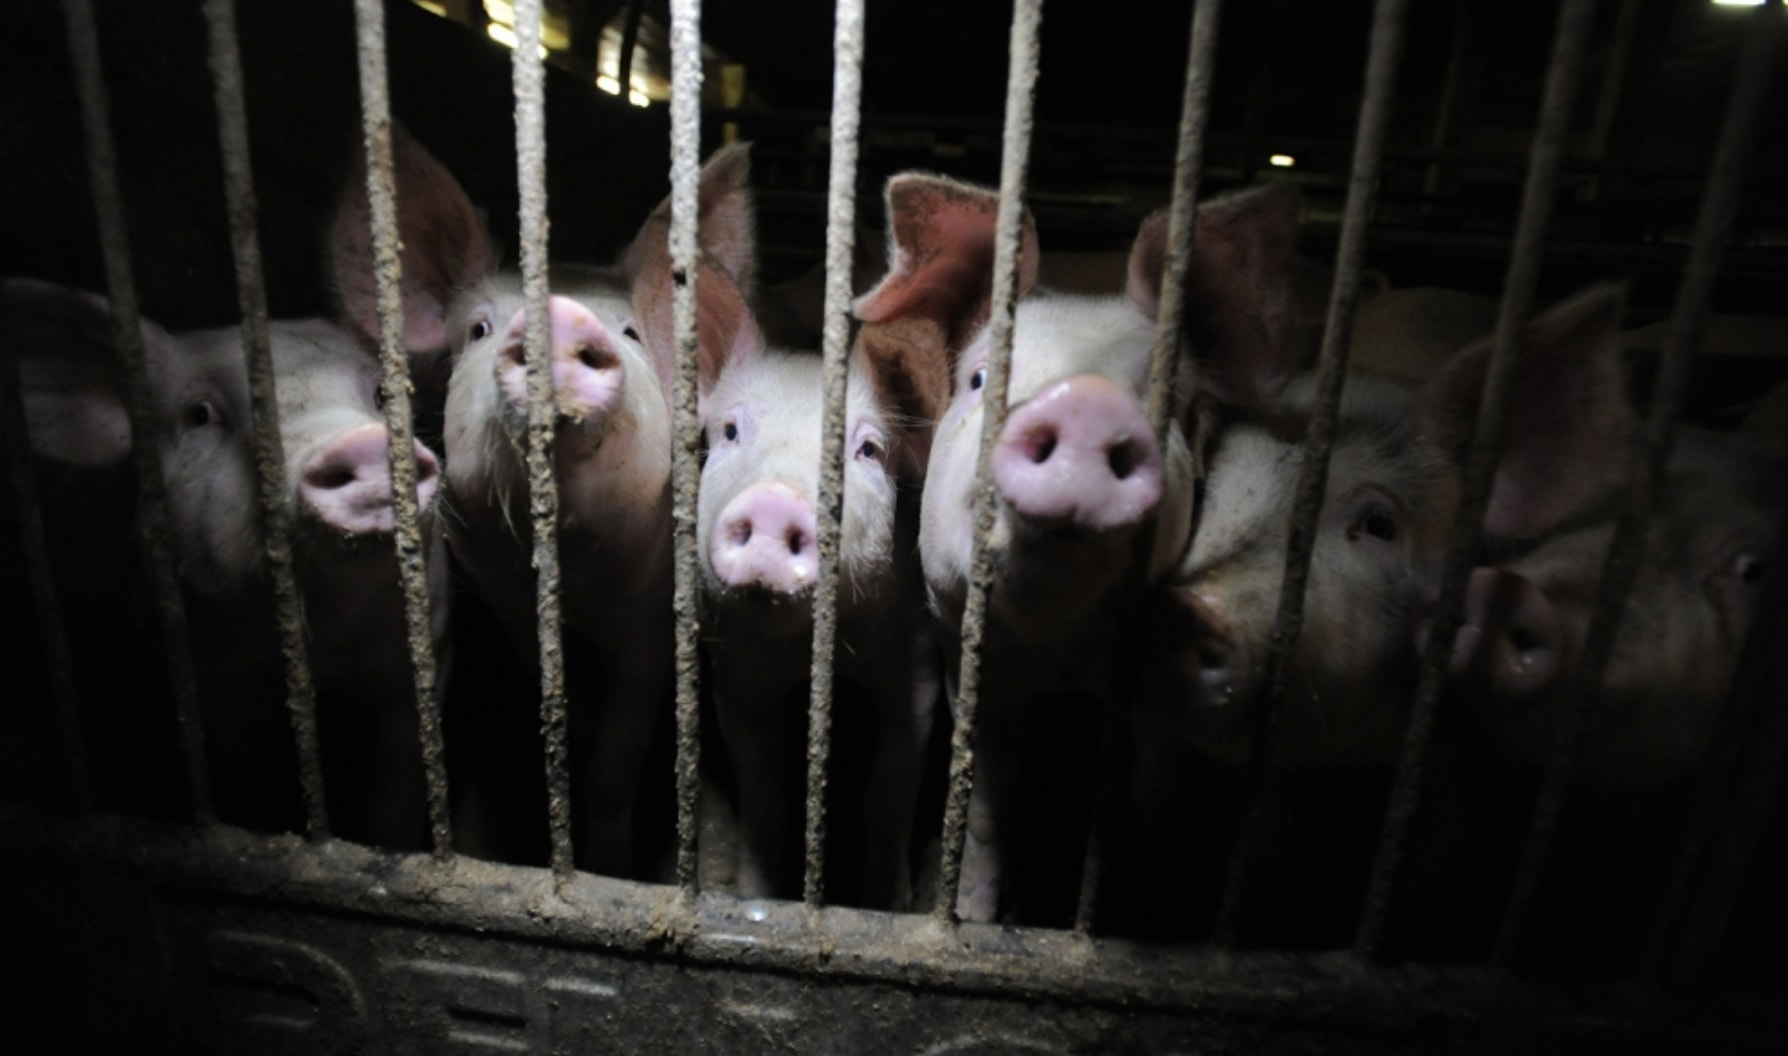 Pigs in a factory farm